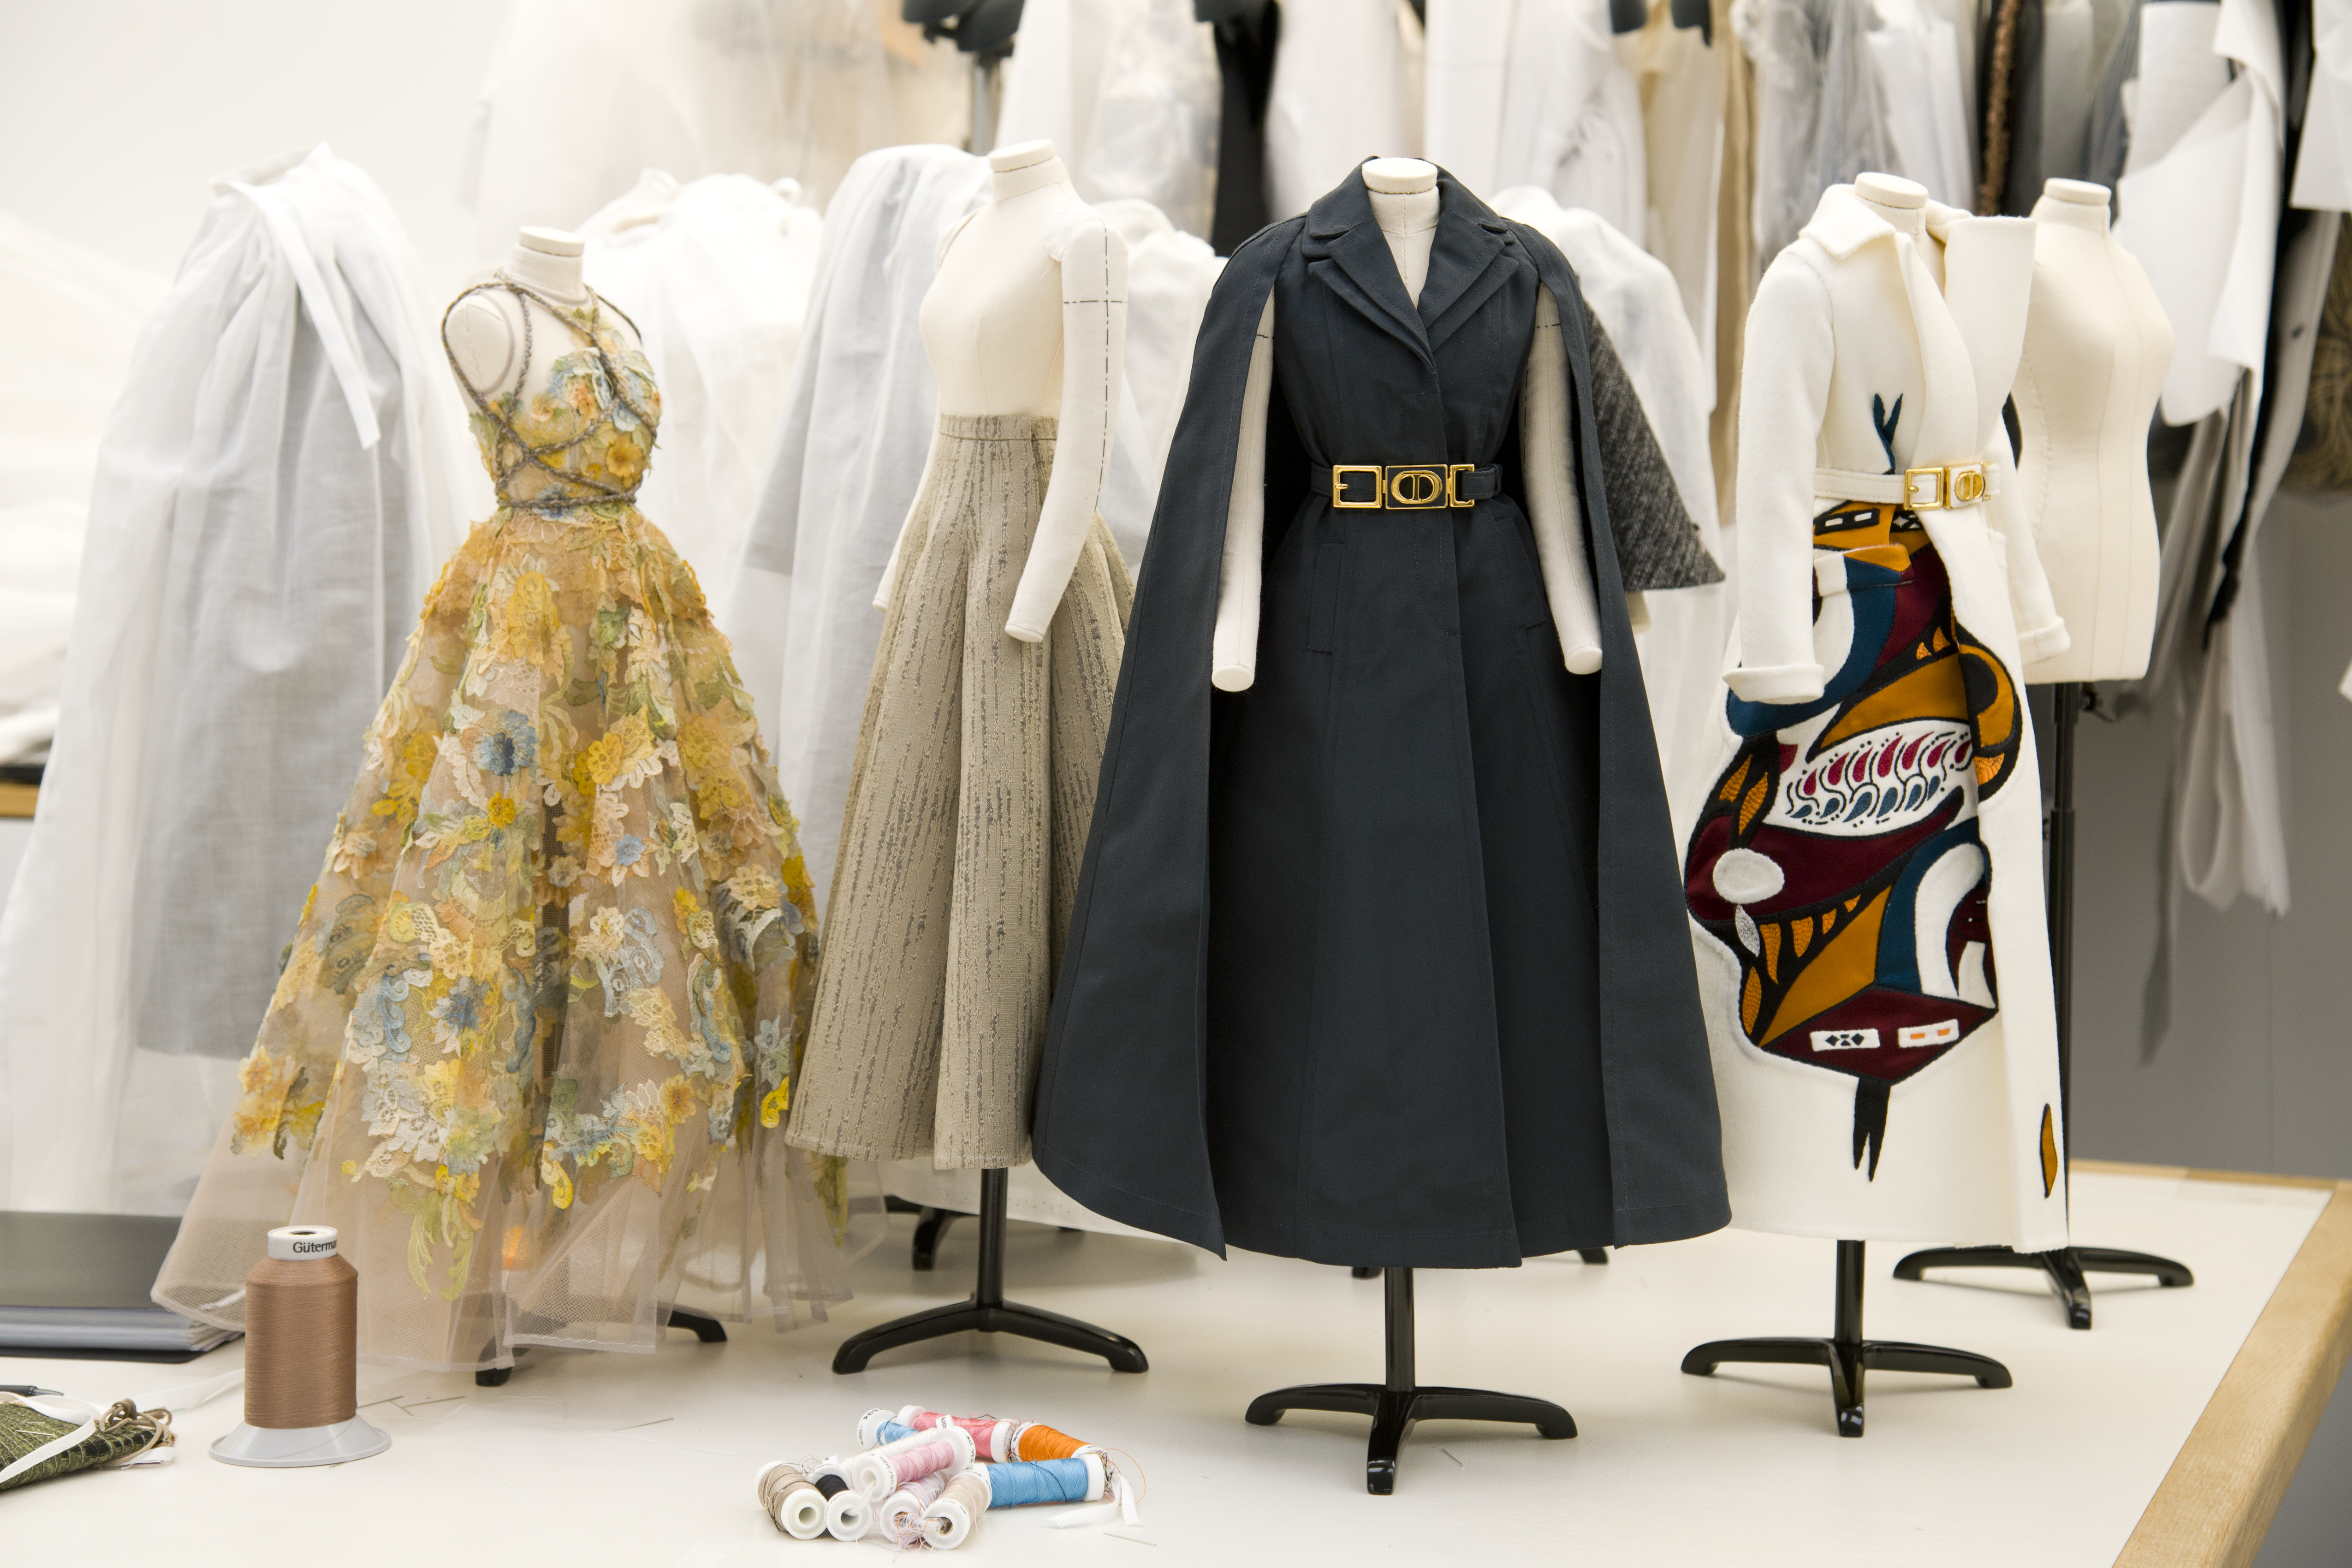 Small-scale dresses from Dor's fall haute couture collection.